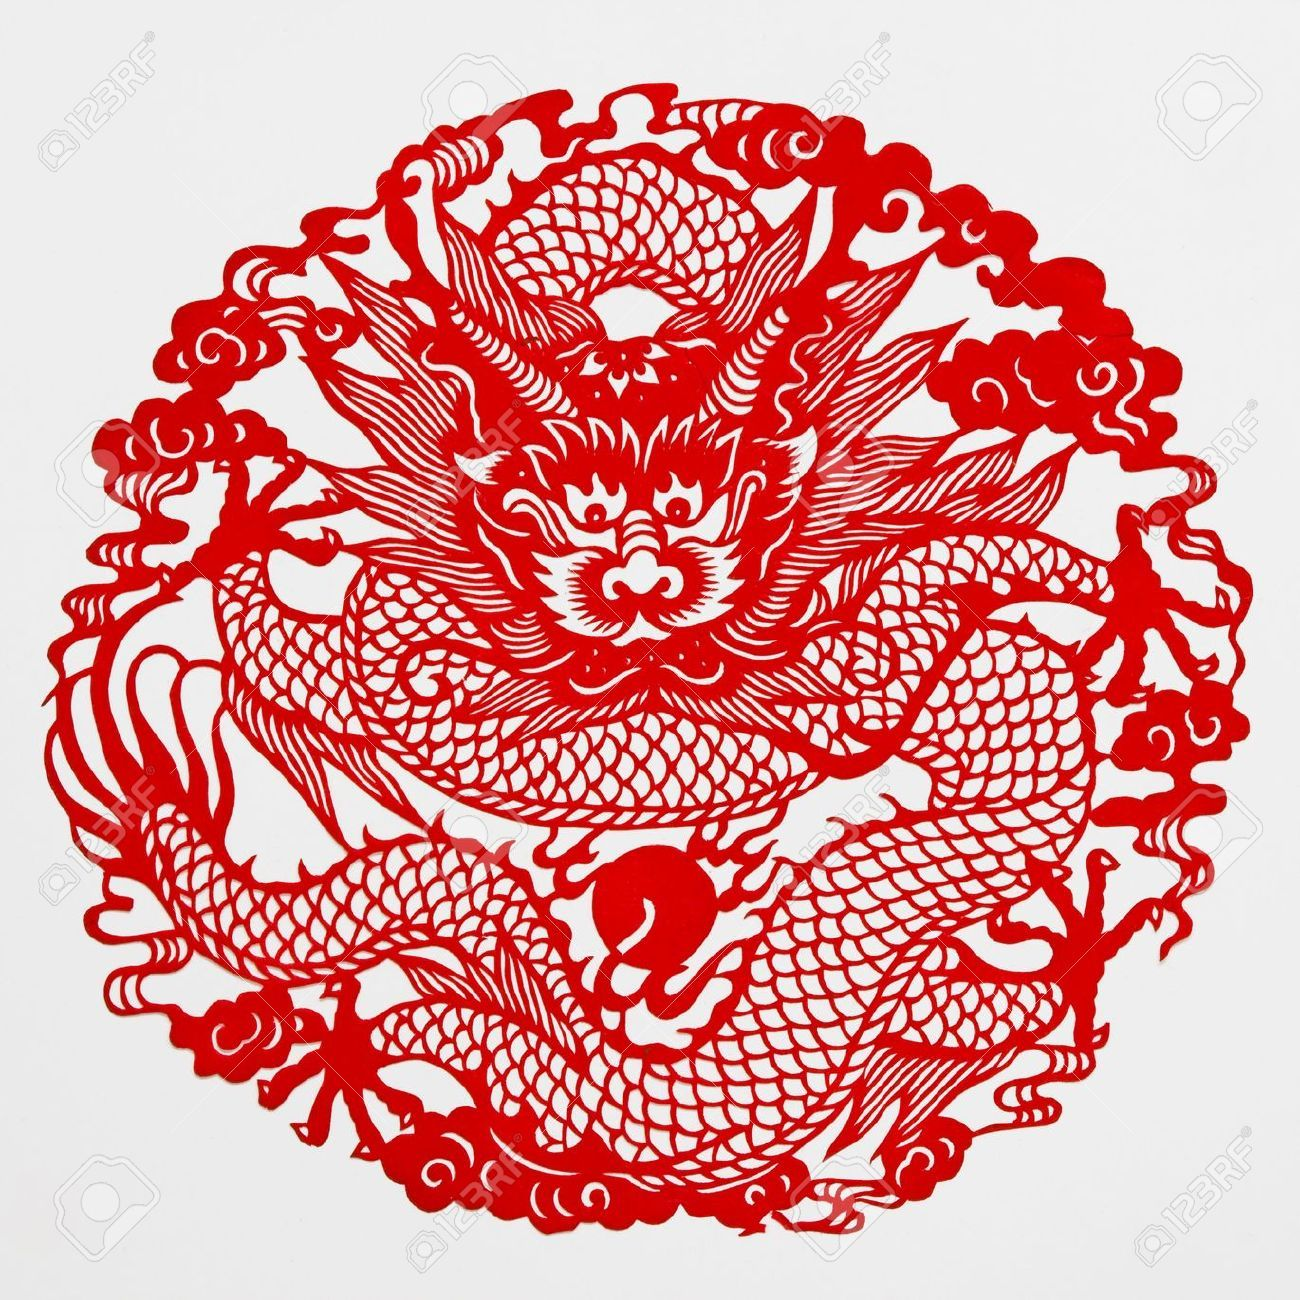 papercut chinese zodiac - Google Search | = Wedding Ideas